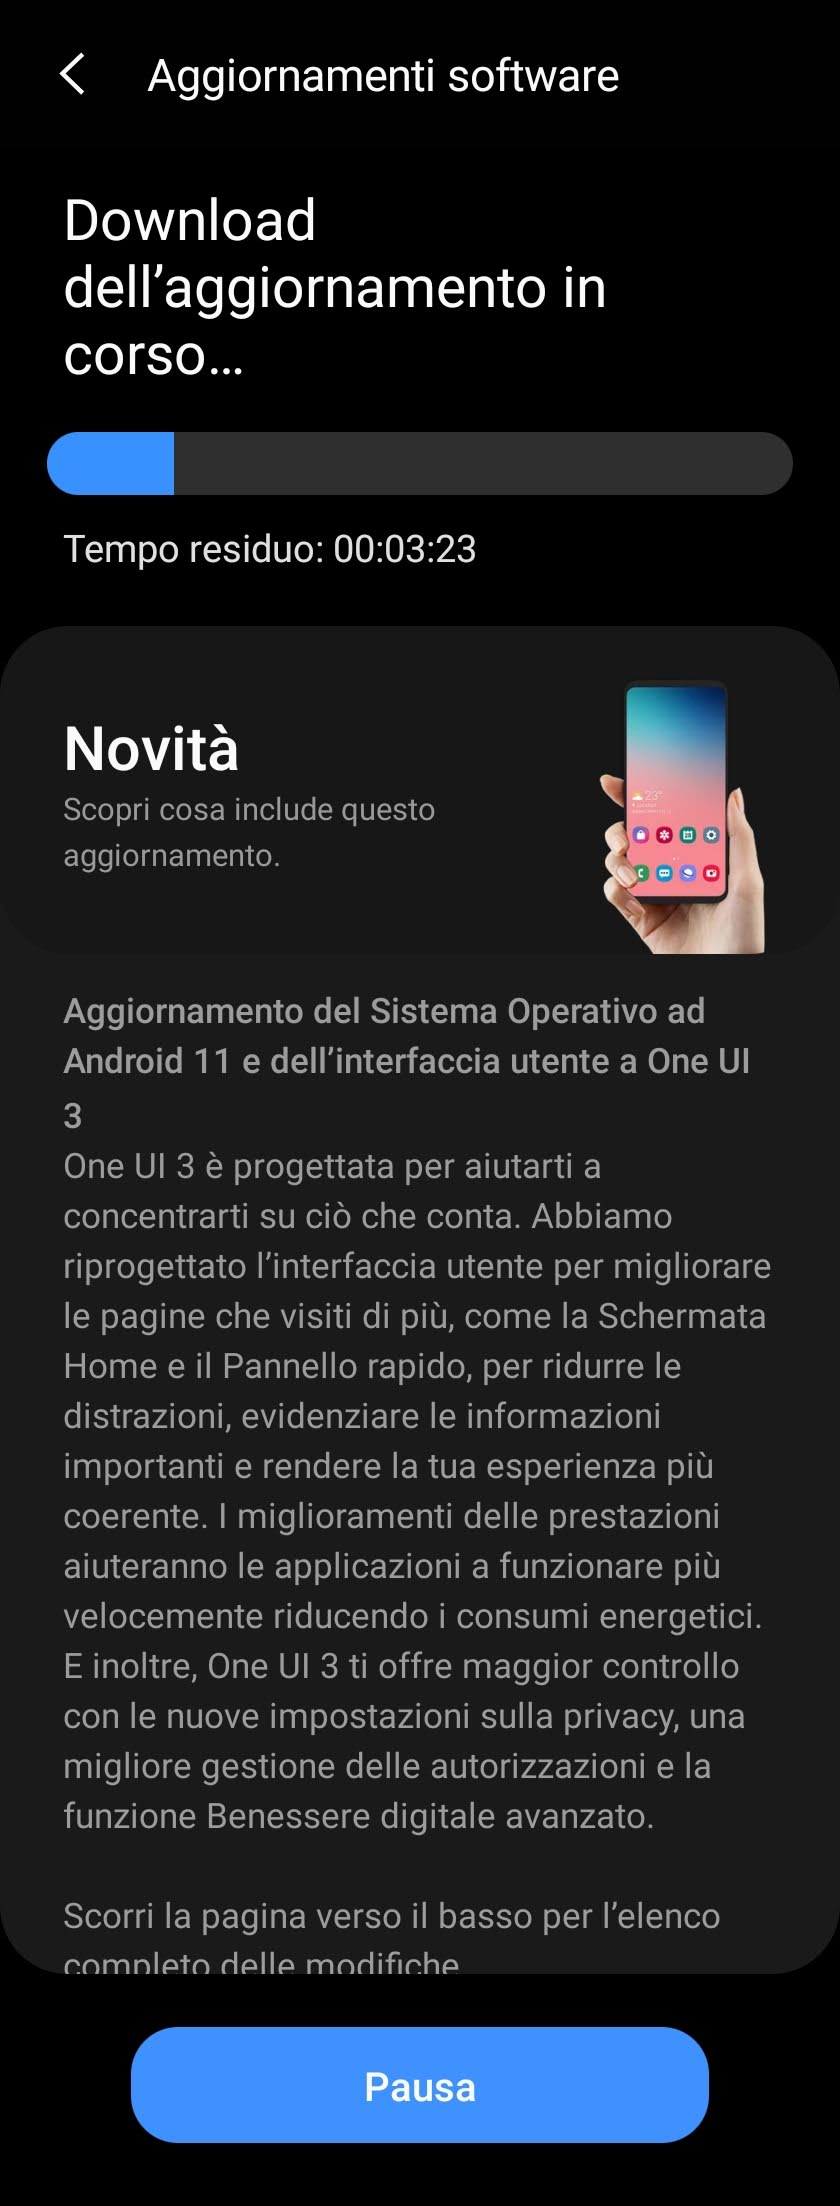 galaxy fold 2 android 11 changelog – 8